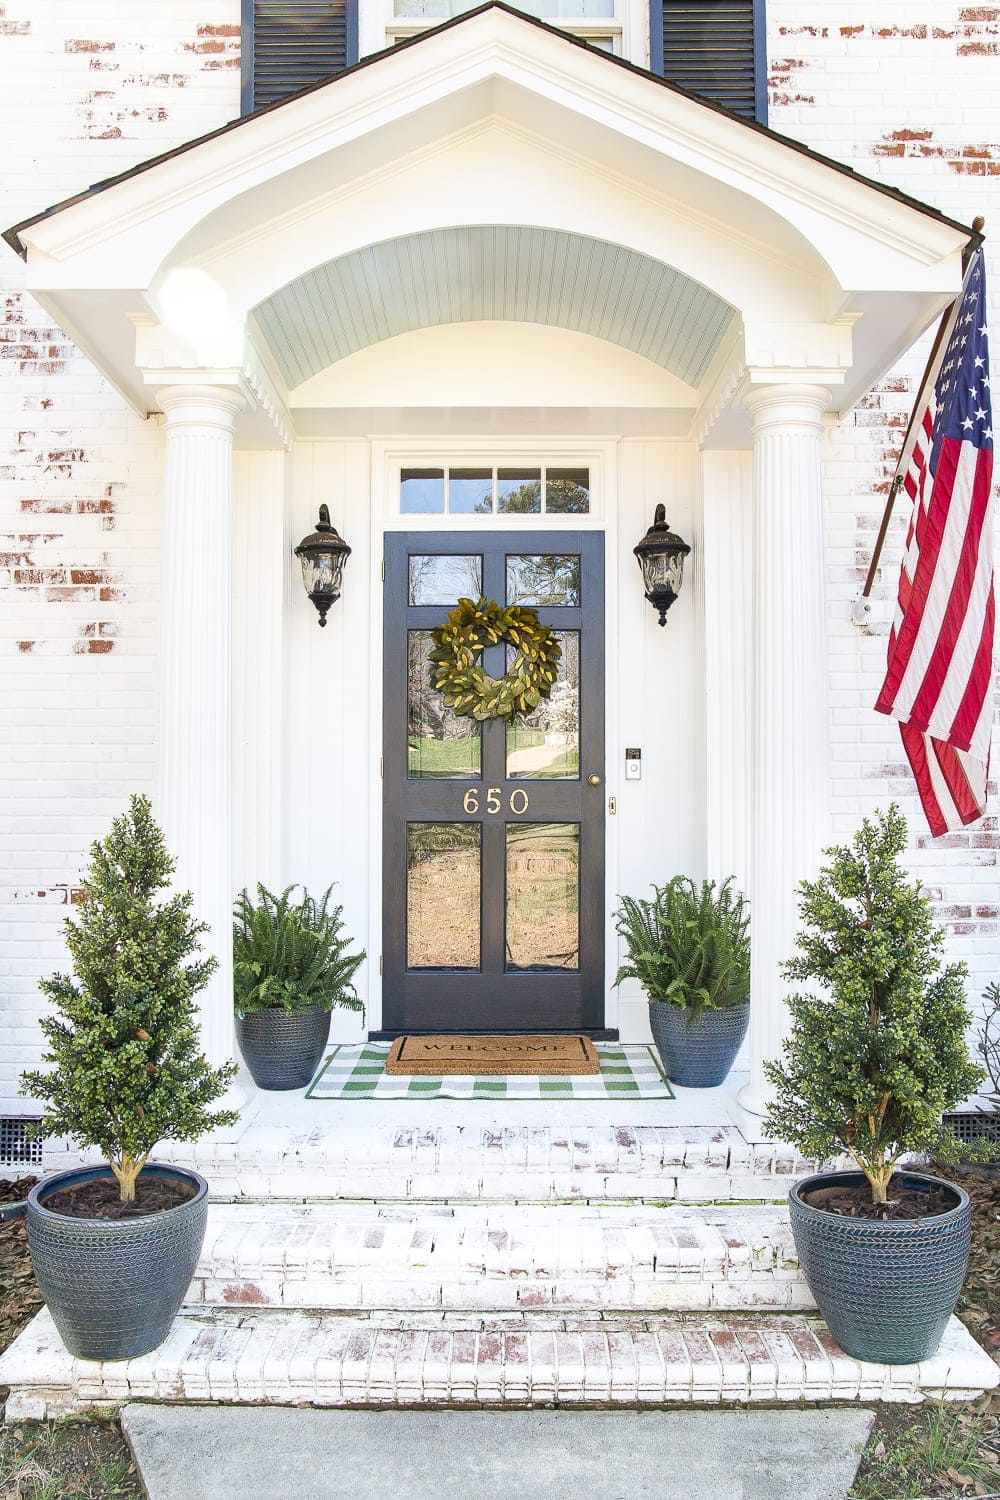 How To Decorate A Small Porch Stoop In 4 Easy Steps Bless Er House